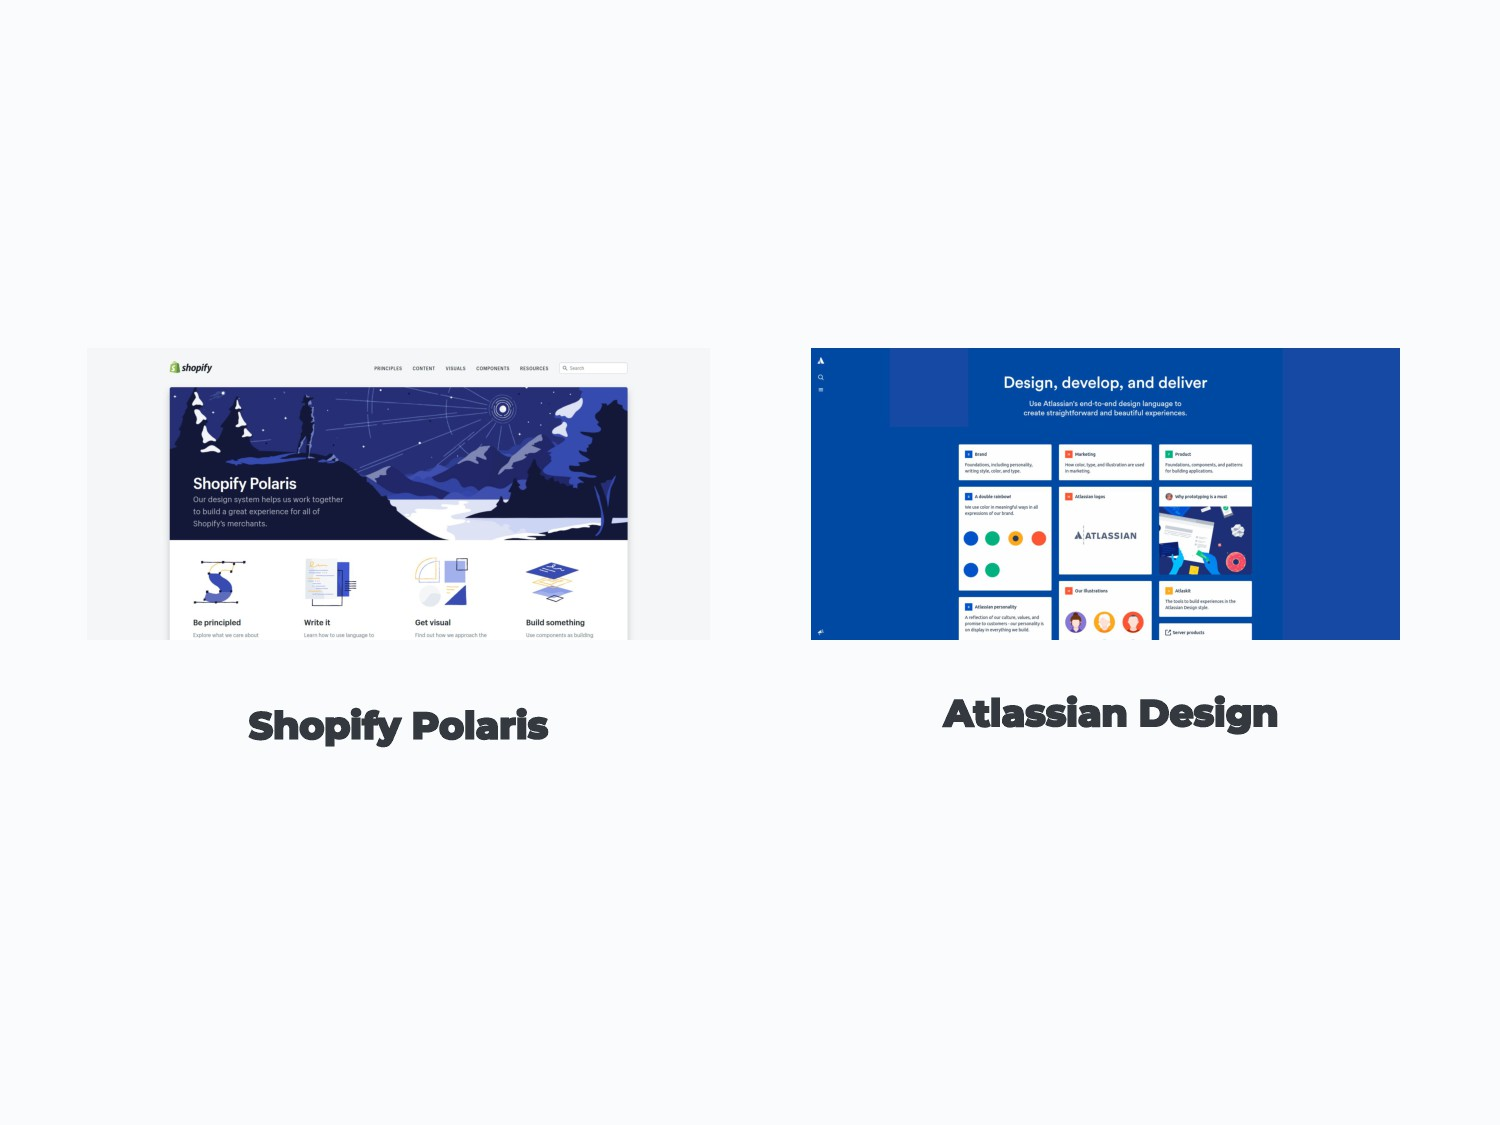 Shopify Polaris Atlassian Design